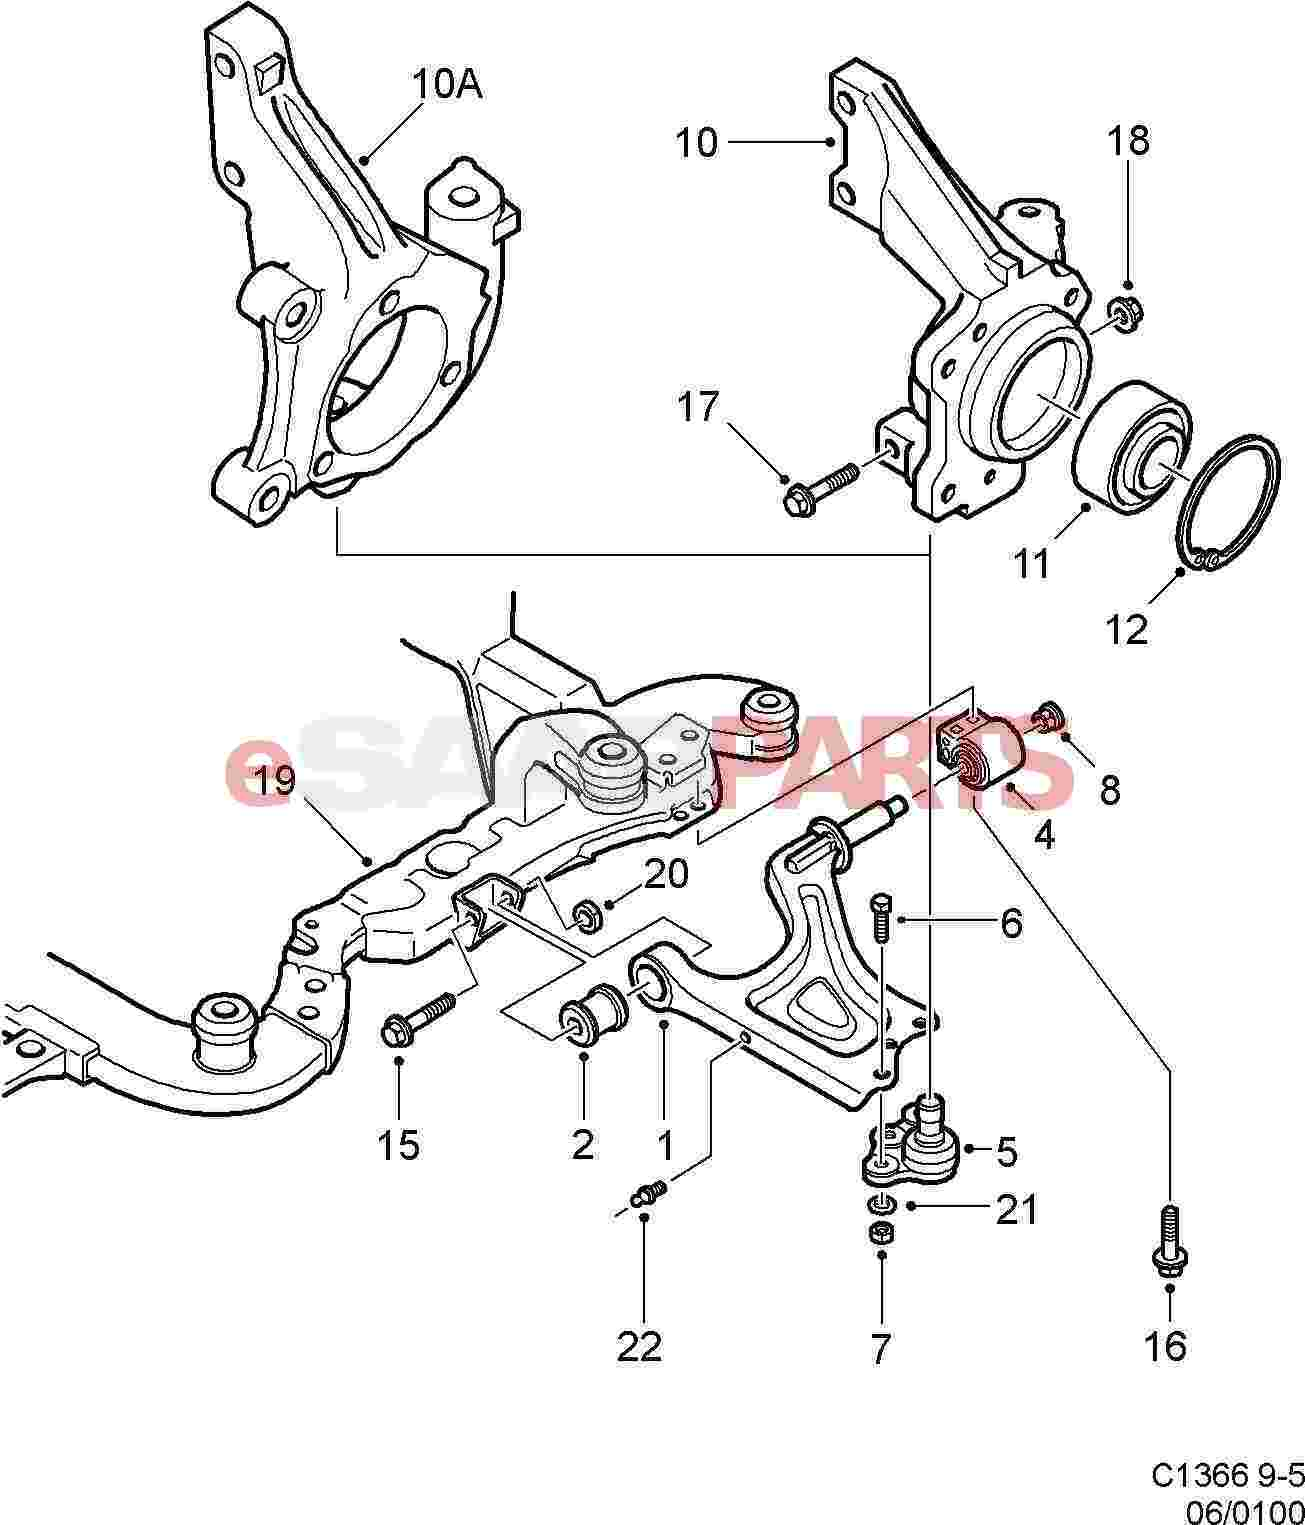 2005 Bmw X5 Fuse Box Diagram Wiring Library